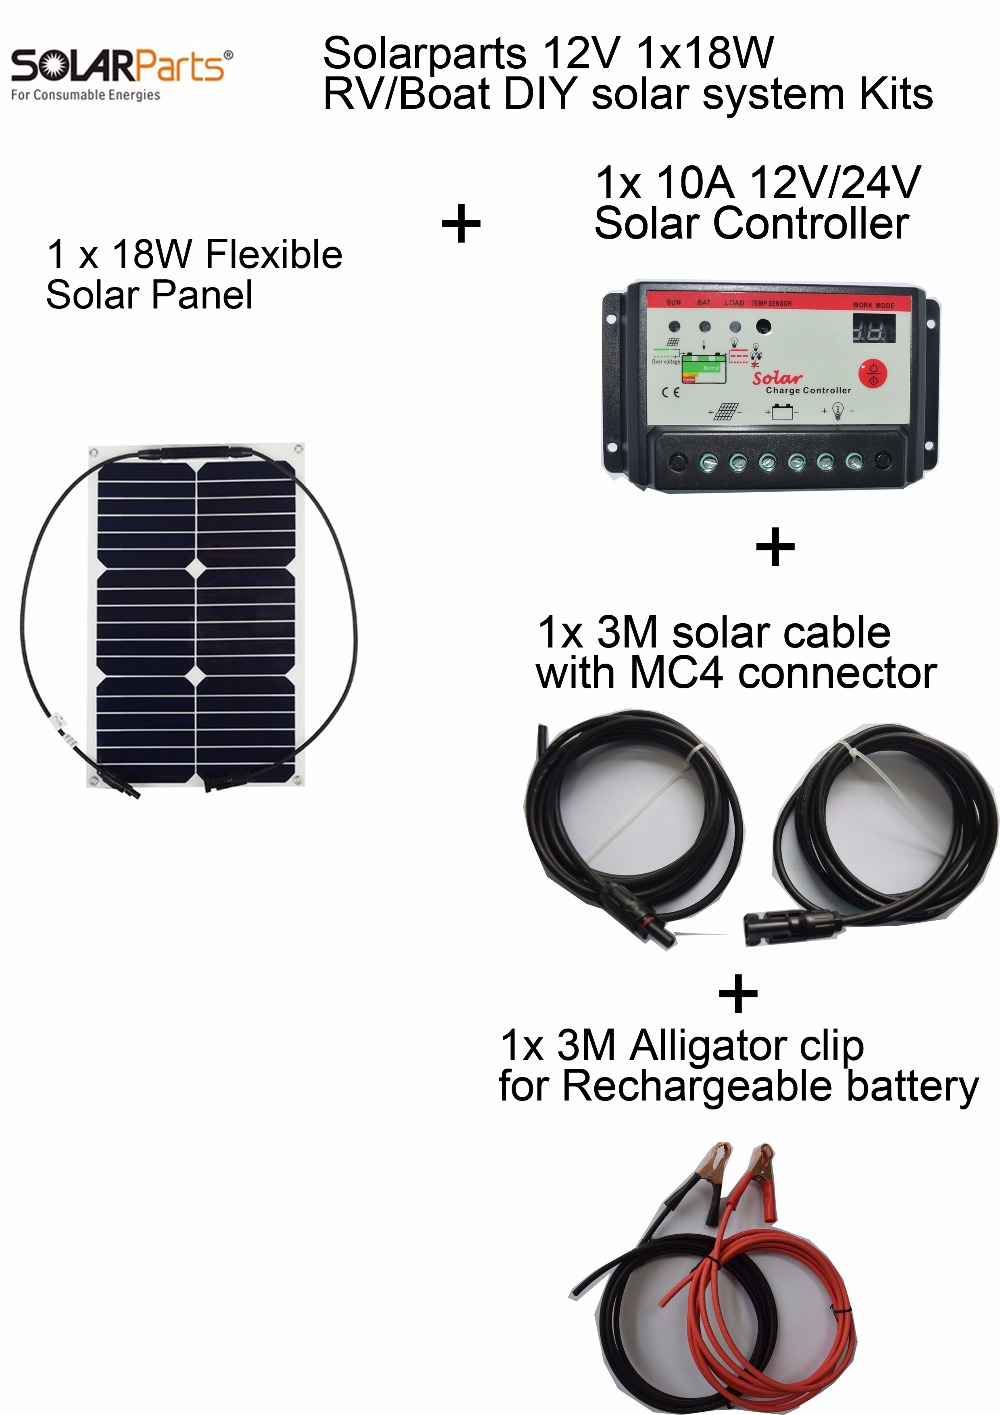 BOGUANG 12V 18W DIY RV Boat Kits Solar System 18W flexible solar panel 10A solar controller 1 set 3M MC4 cable 1 set clip sp 36 120w 12v semi flexible monocrystalline solar panel waterproof high conversion efficiency for rv boat car 1 5m cable